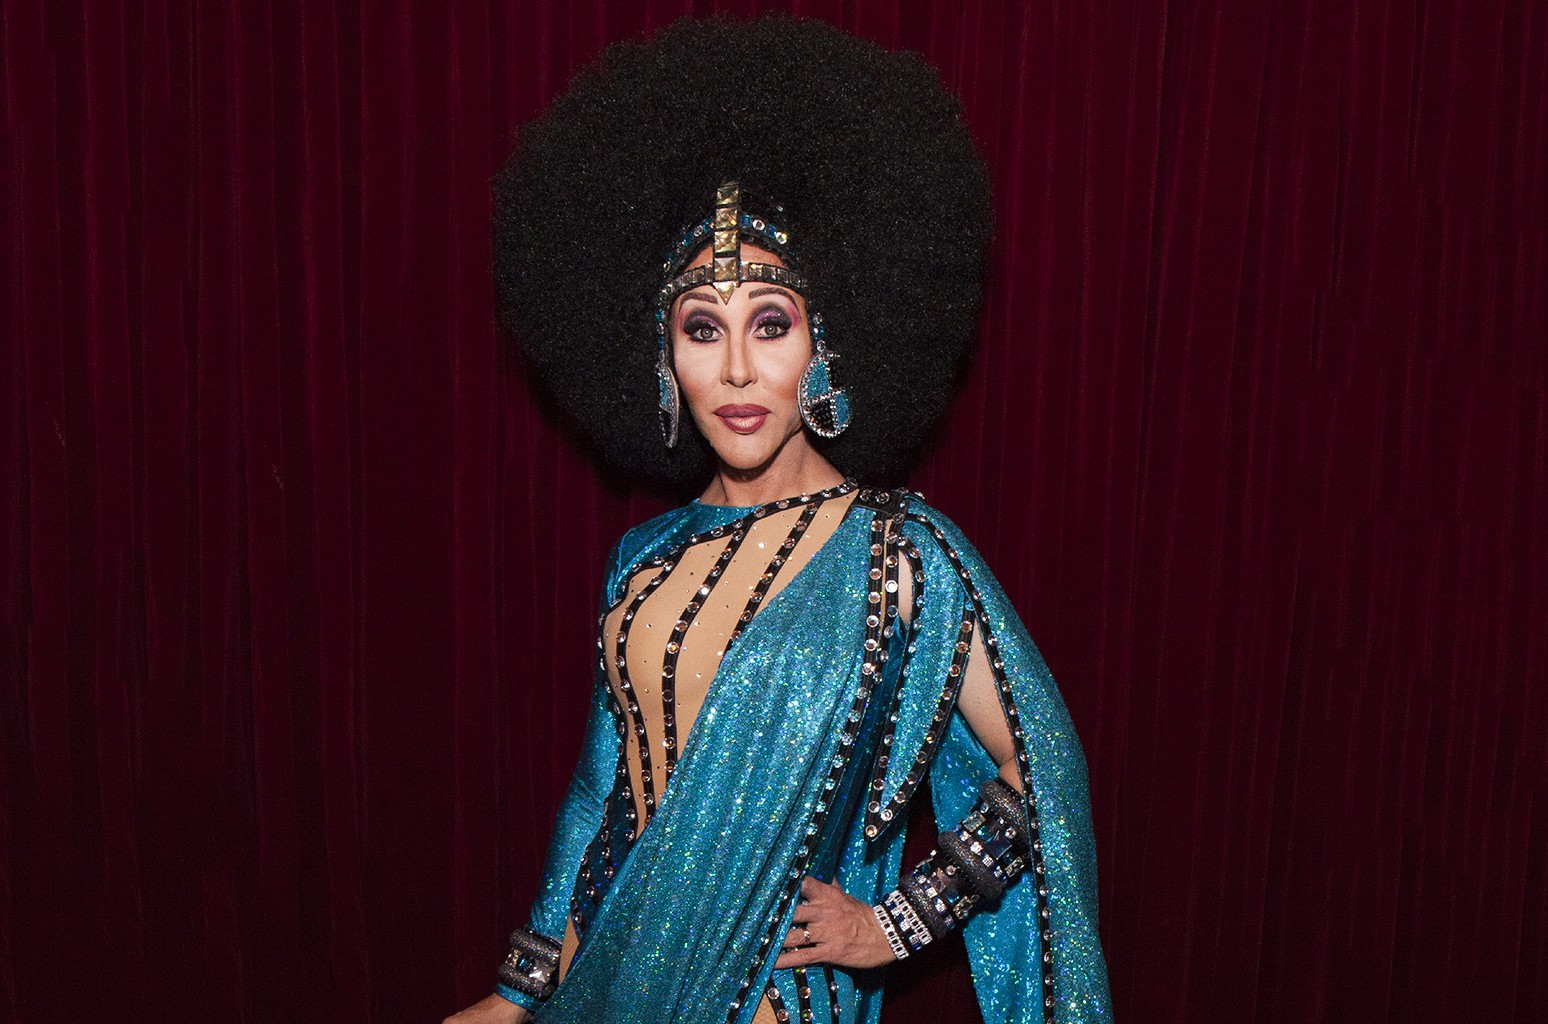 Chad Michaels attends VH1 Presents RuPaul's DragCon Party at Belasco Theatre on April 28, 2017 in Los Angeles.